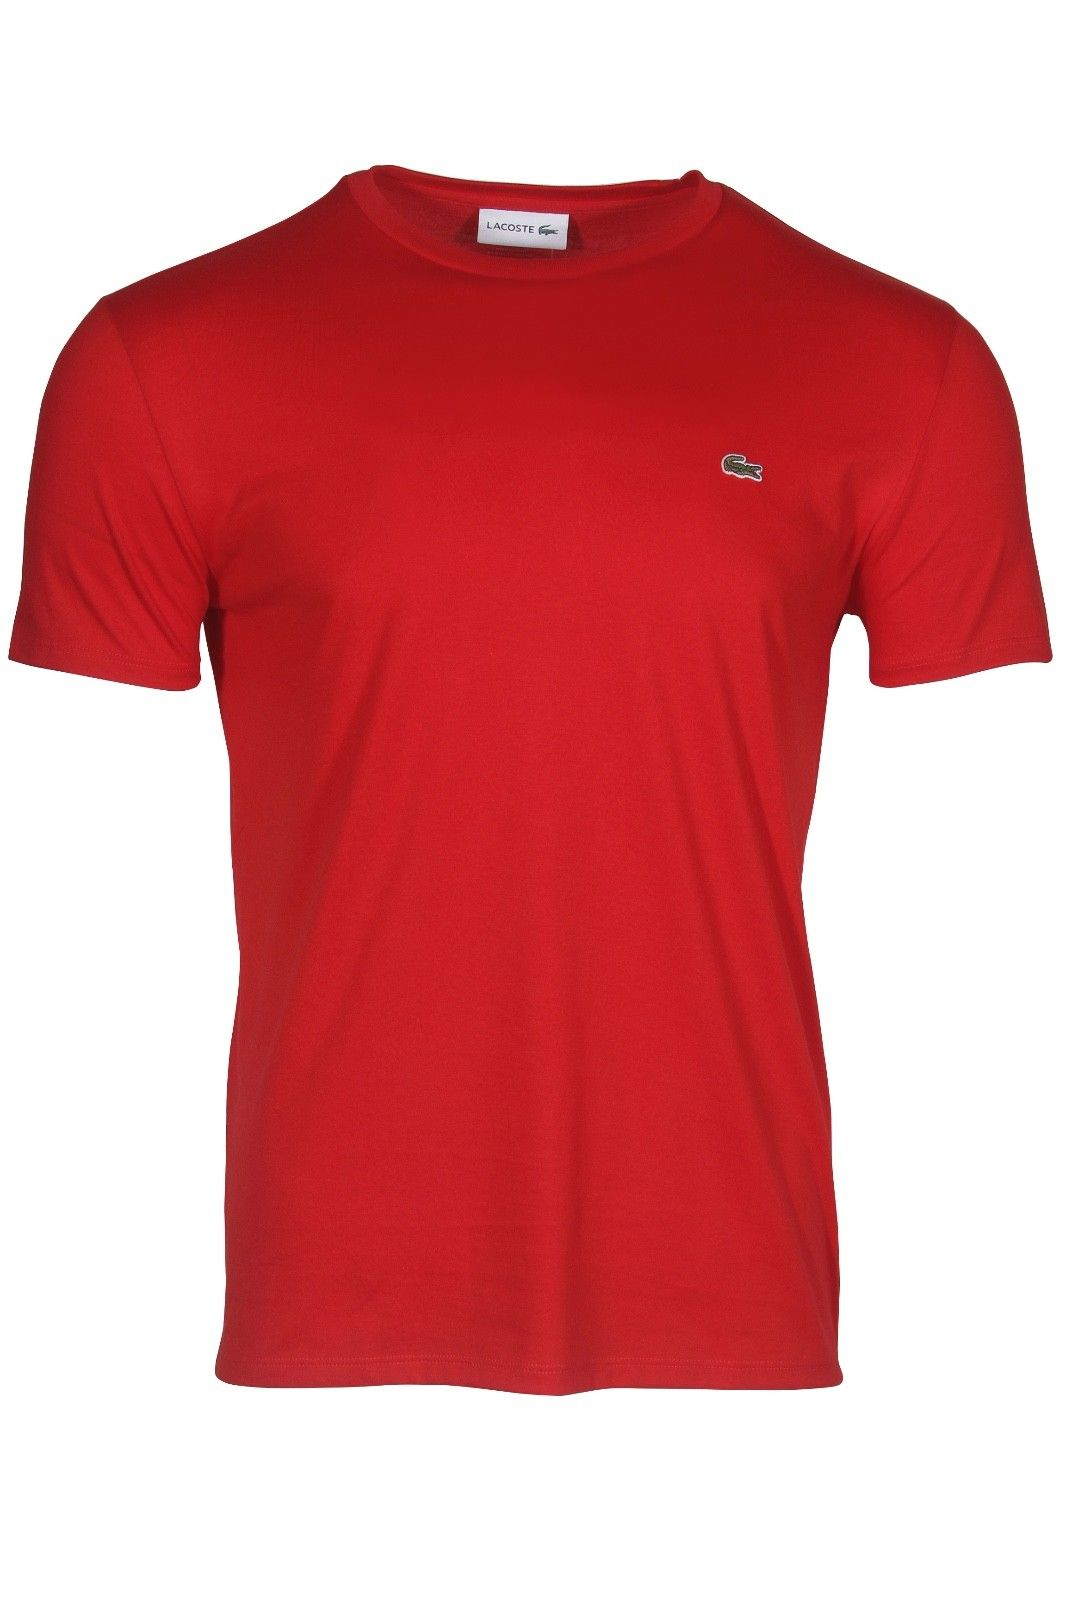 260e15df2c9b Lacoste Men's Crew Neck Pima Cotton Jersey T-Shirt - modanet.com